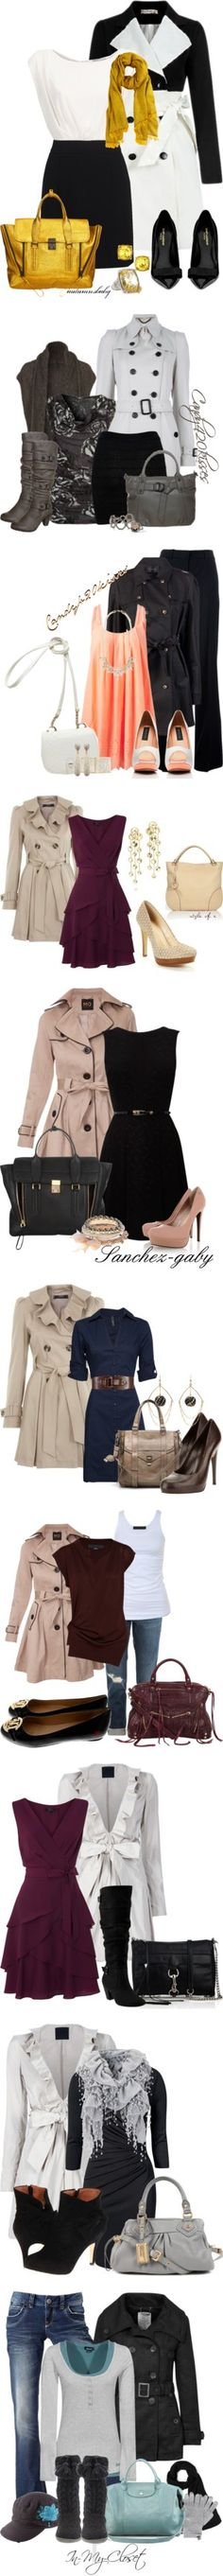 """Trench coats"" by aquamarine78 ❤ liked on Polyvore"